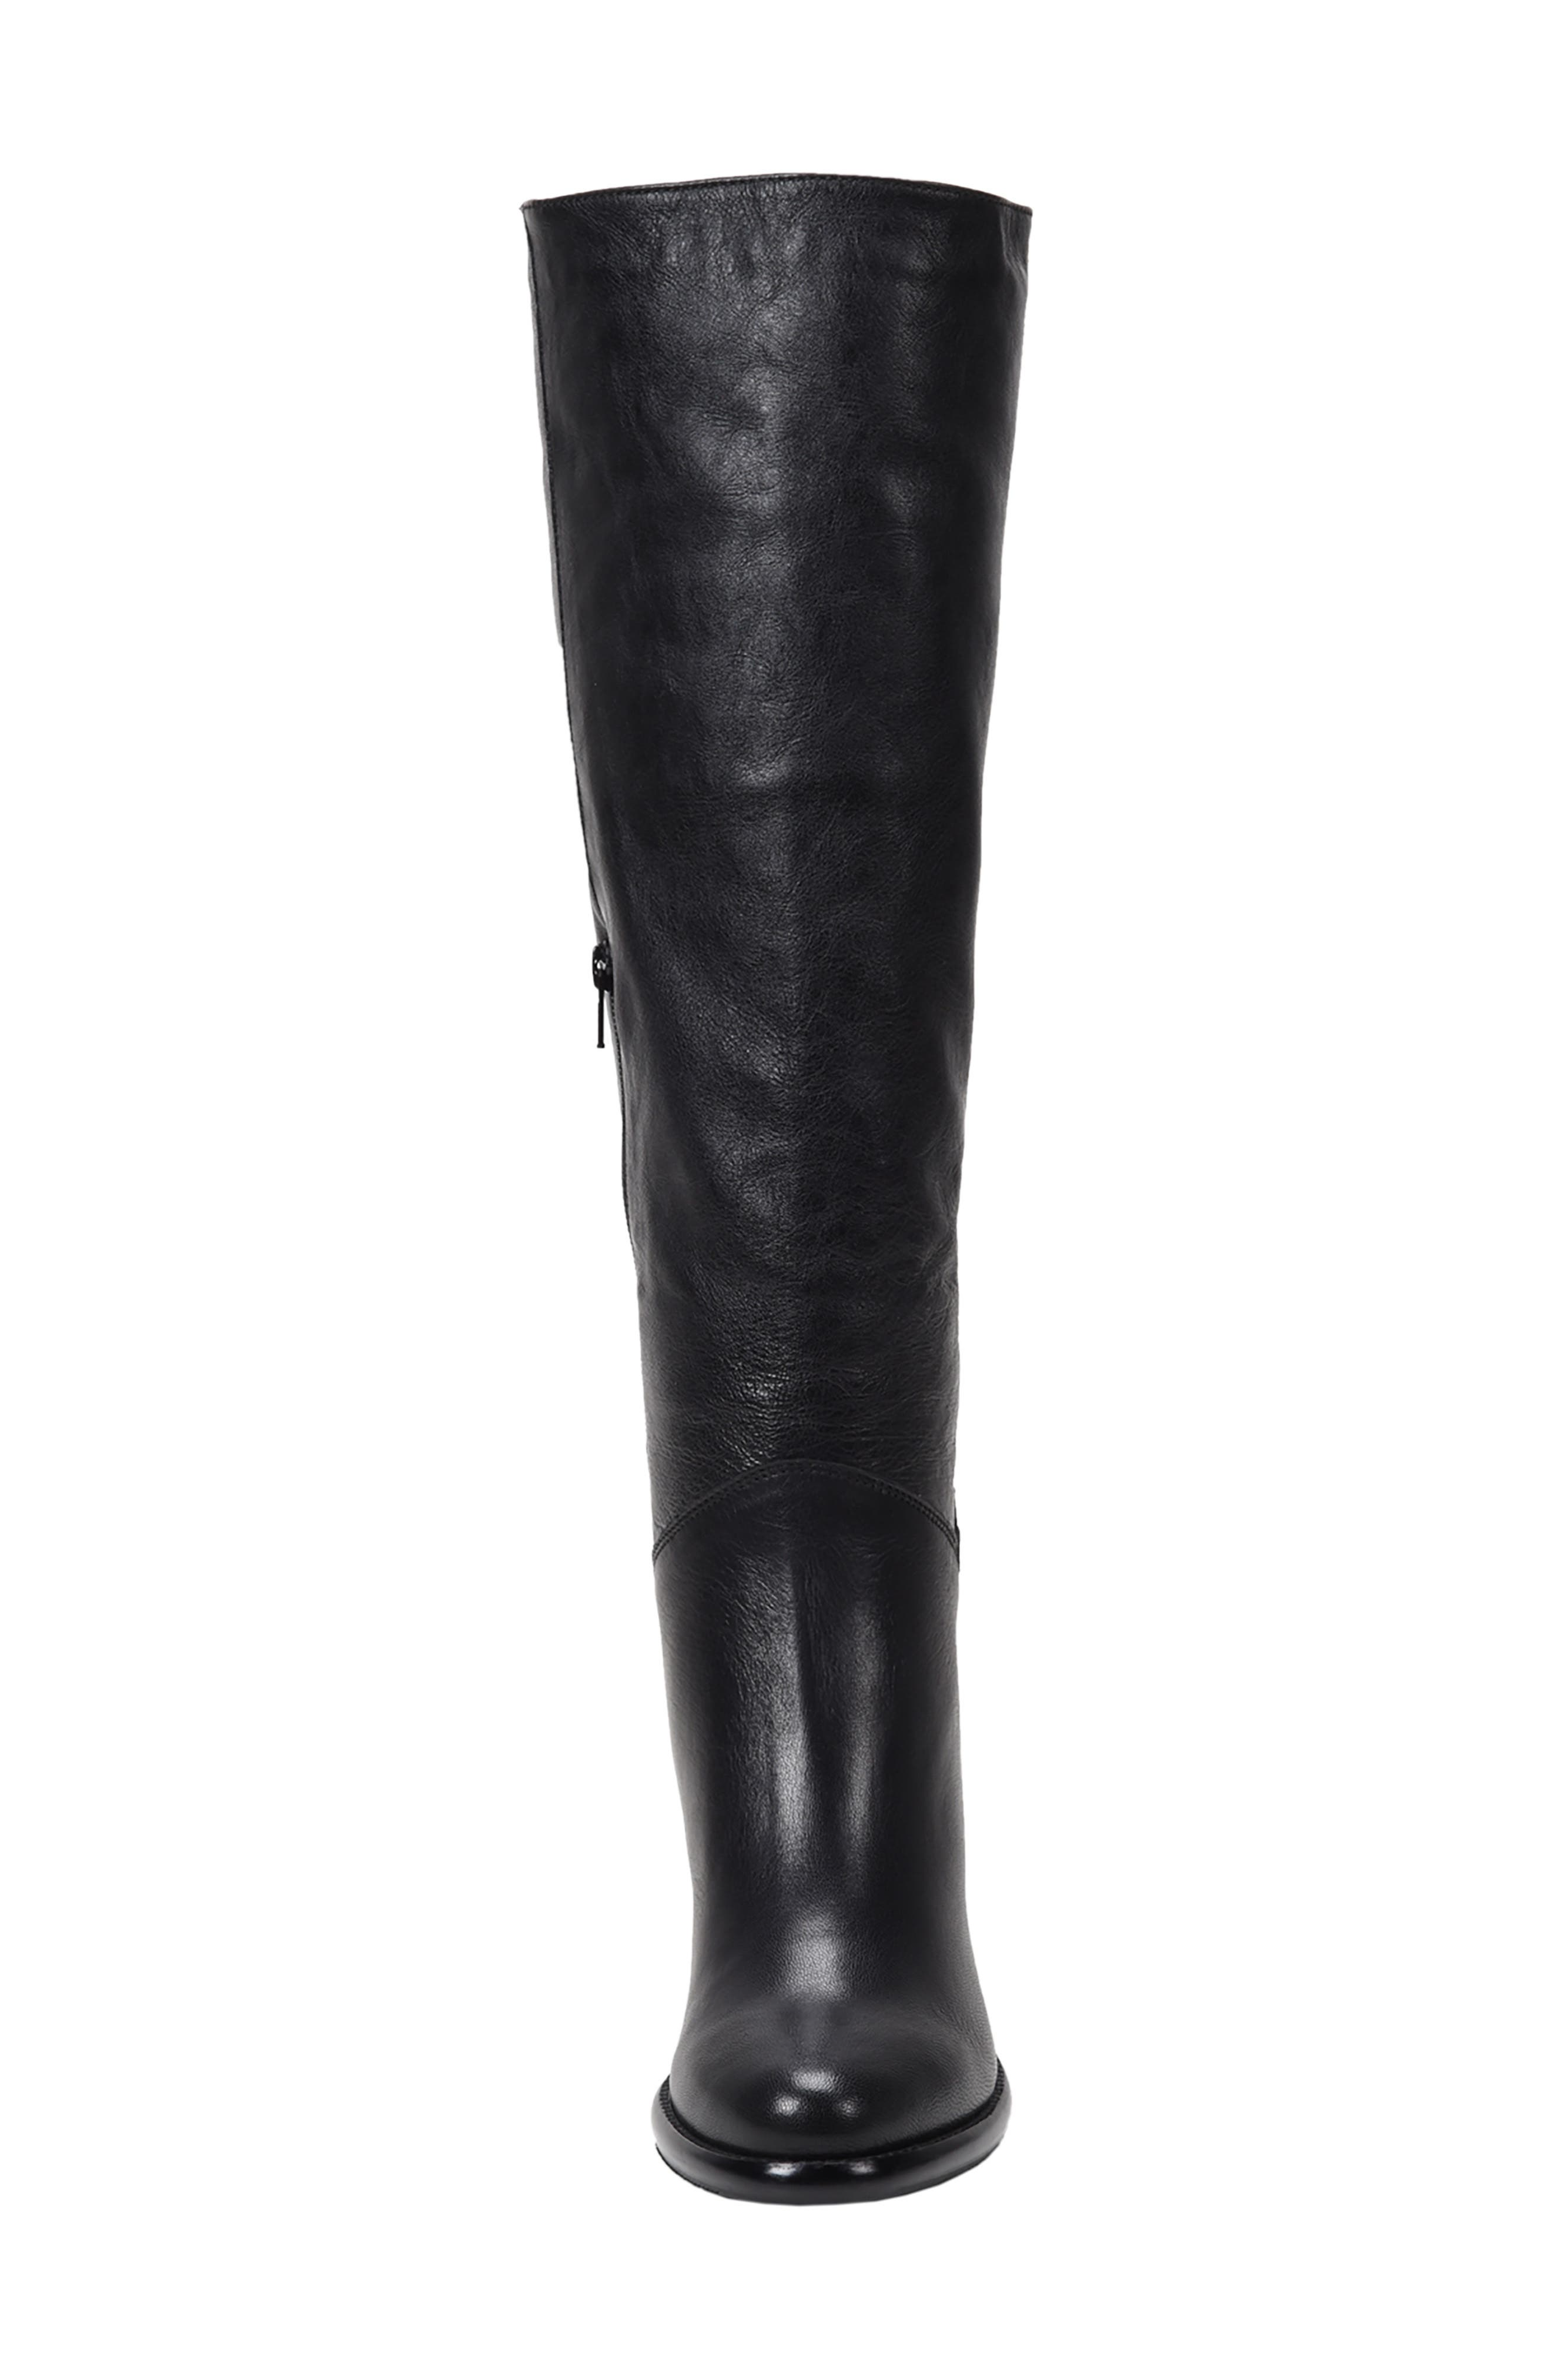 ROSS & SNOW, Michela SP Waterproof Genuine Shearling Lined Boot, Alternate thumbnail 3, color, BLACK METALLIC LEATHER